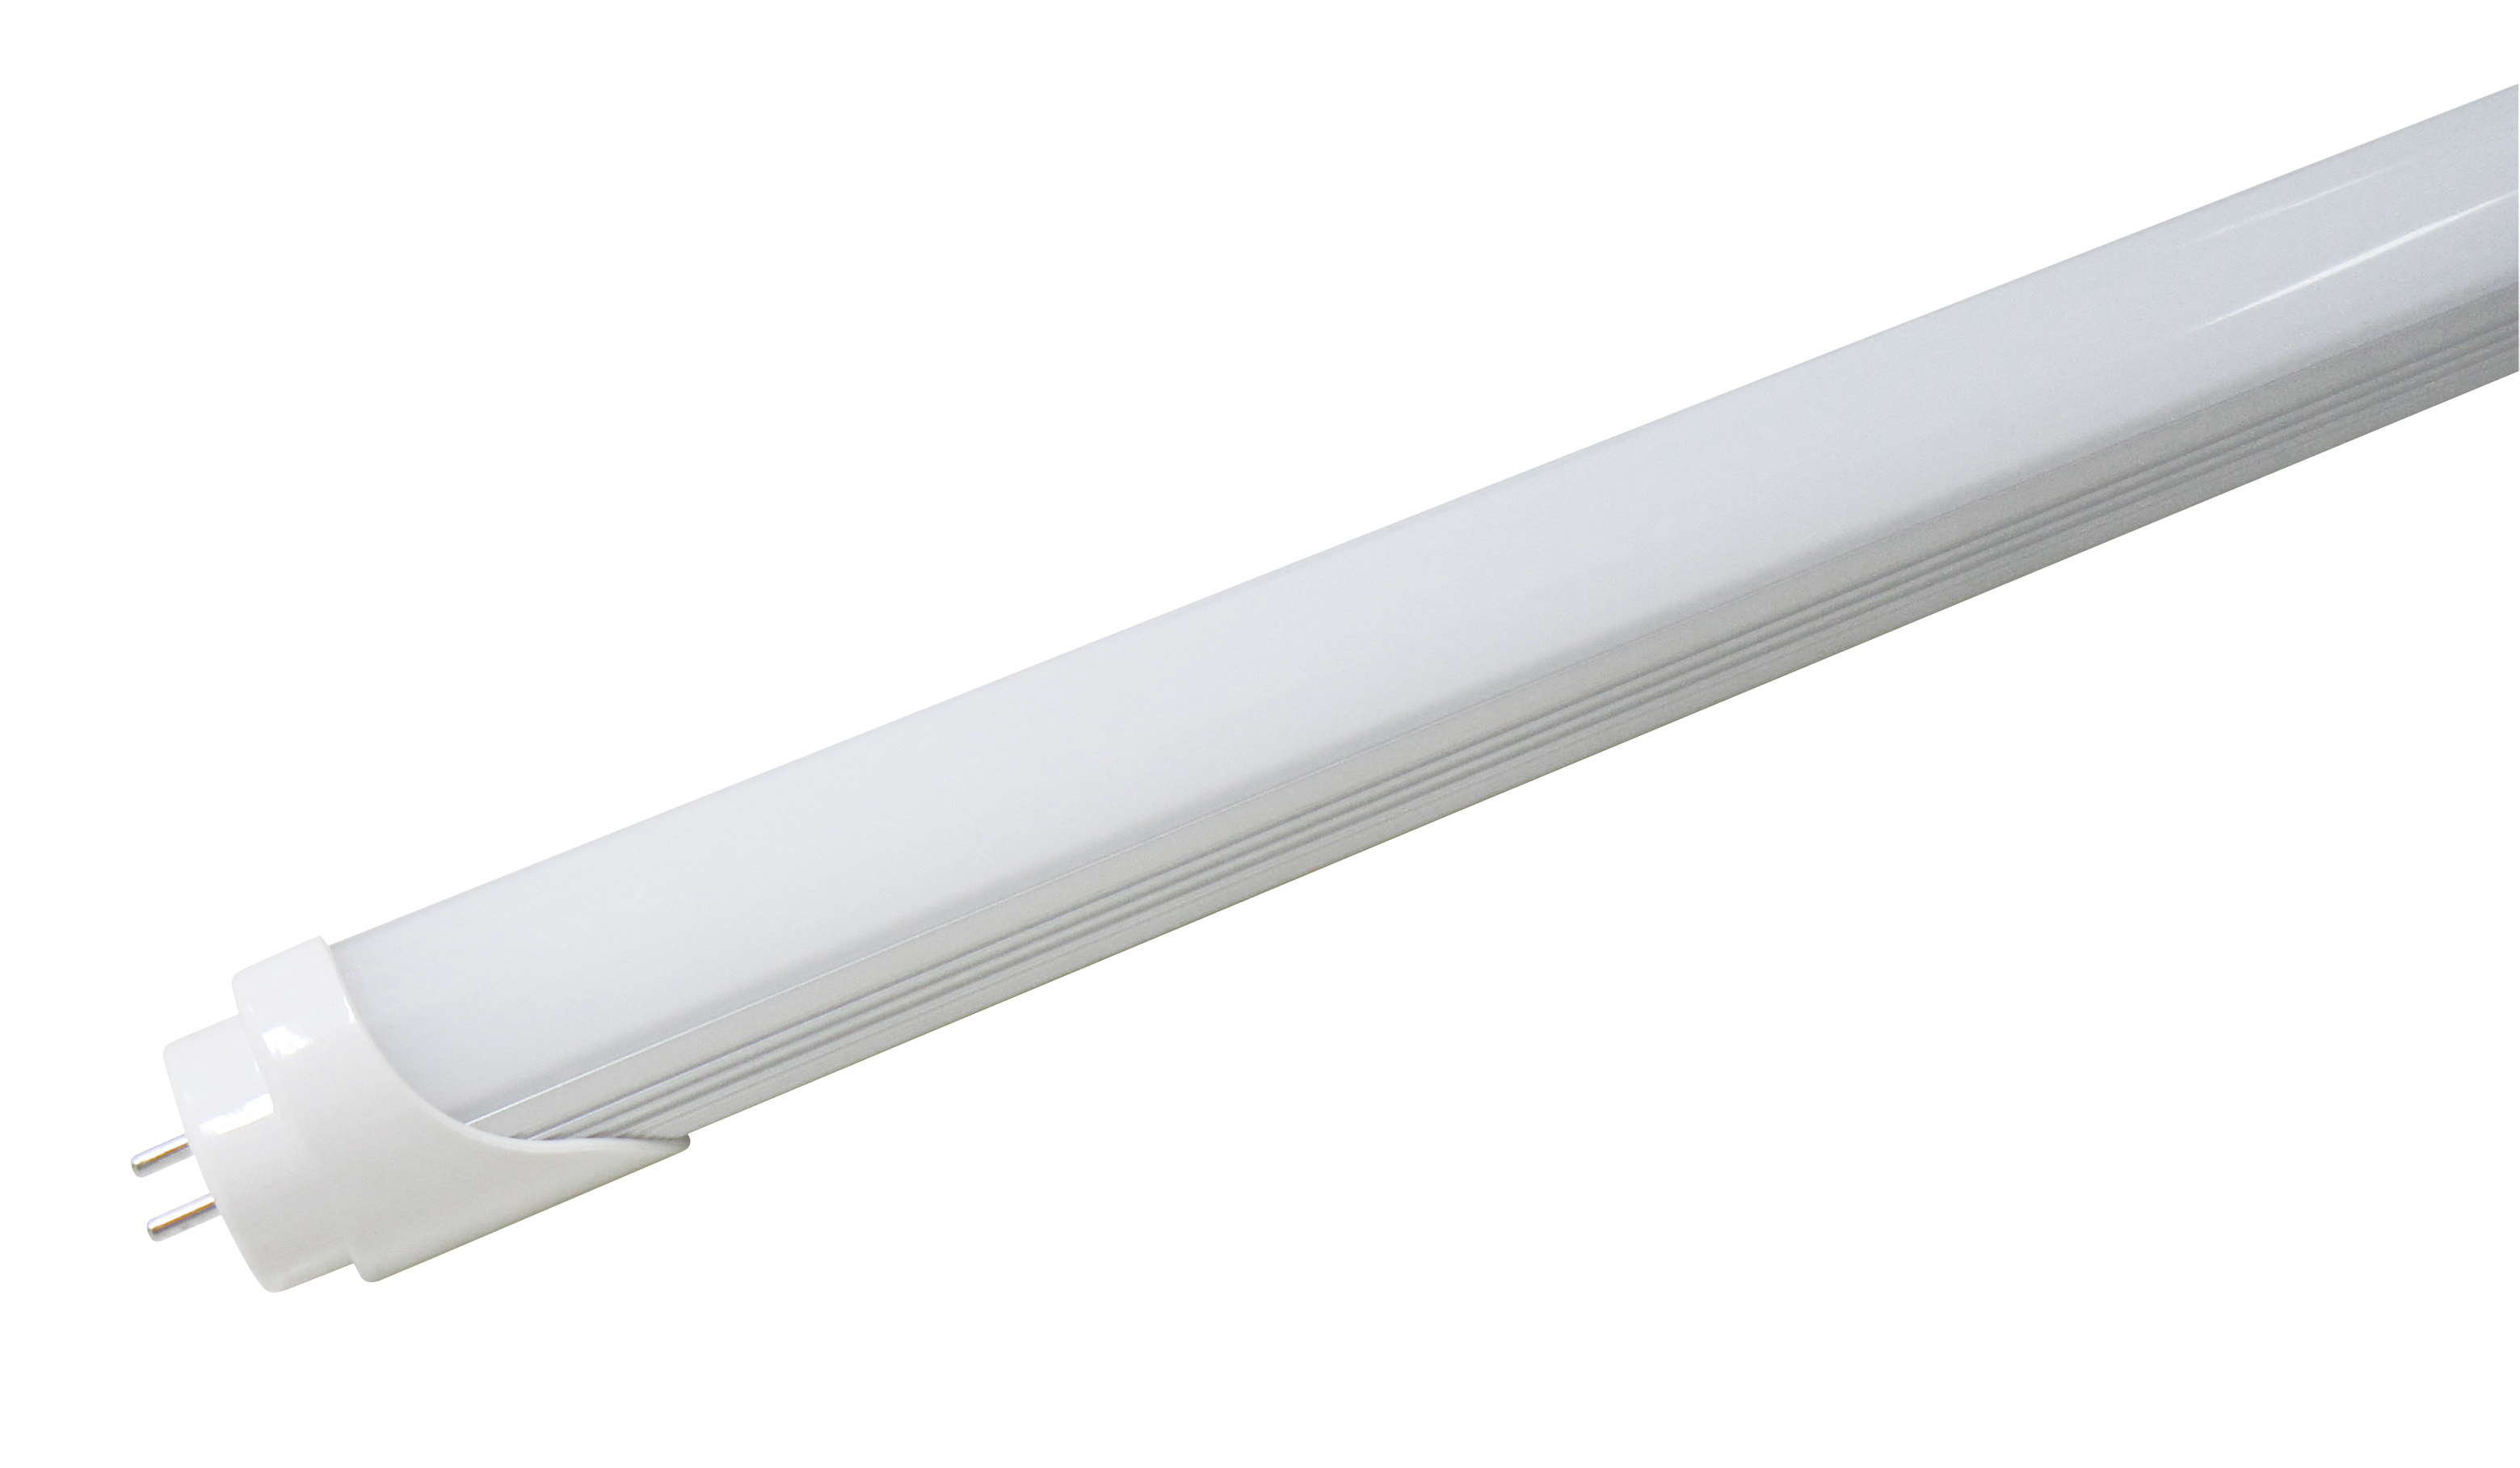 Led tube can not be ignored : Led tube rolls up like a mat, which has broad market prospects. The tendency is absolute, especially in the lighting field. The speed of development is quickly that all of us can prove. However, key issues of led tube can not be ignored. Though led tube has large number of merits to use, the issues will become an obstacle when accumulated. If the led tube light is widely used in lighting the field would be a revolution in the history of mankind lighting. Led tube light source itself has merits, which makes it popular. Led tube light on energy saving, long life, no radiation and so forth. Although led tube has so many advantages, you are advised to take consideration of the following tips. The first one is that dc power supply should be used. When some manufacturers use it in the purpose of saving cost, &quot;rc-buck&quot; approach to the led tube products, power supply, led tube that will directly affect the life of the product. Using a dedicated switching power supply (preferably constant current source) to the led tube and led flood light power supply will not affect the product life of the product, but the product cost is relatively high. Http://www. Better-led. Com/ledtubelight/